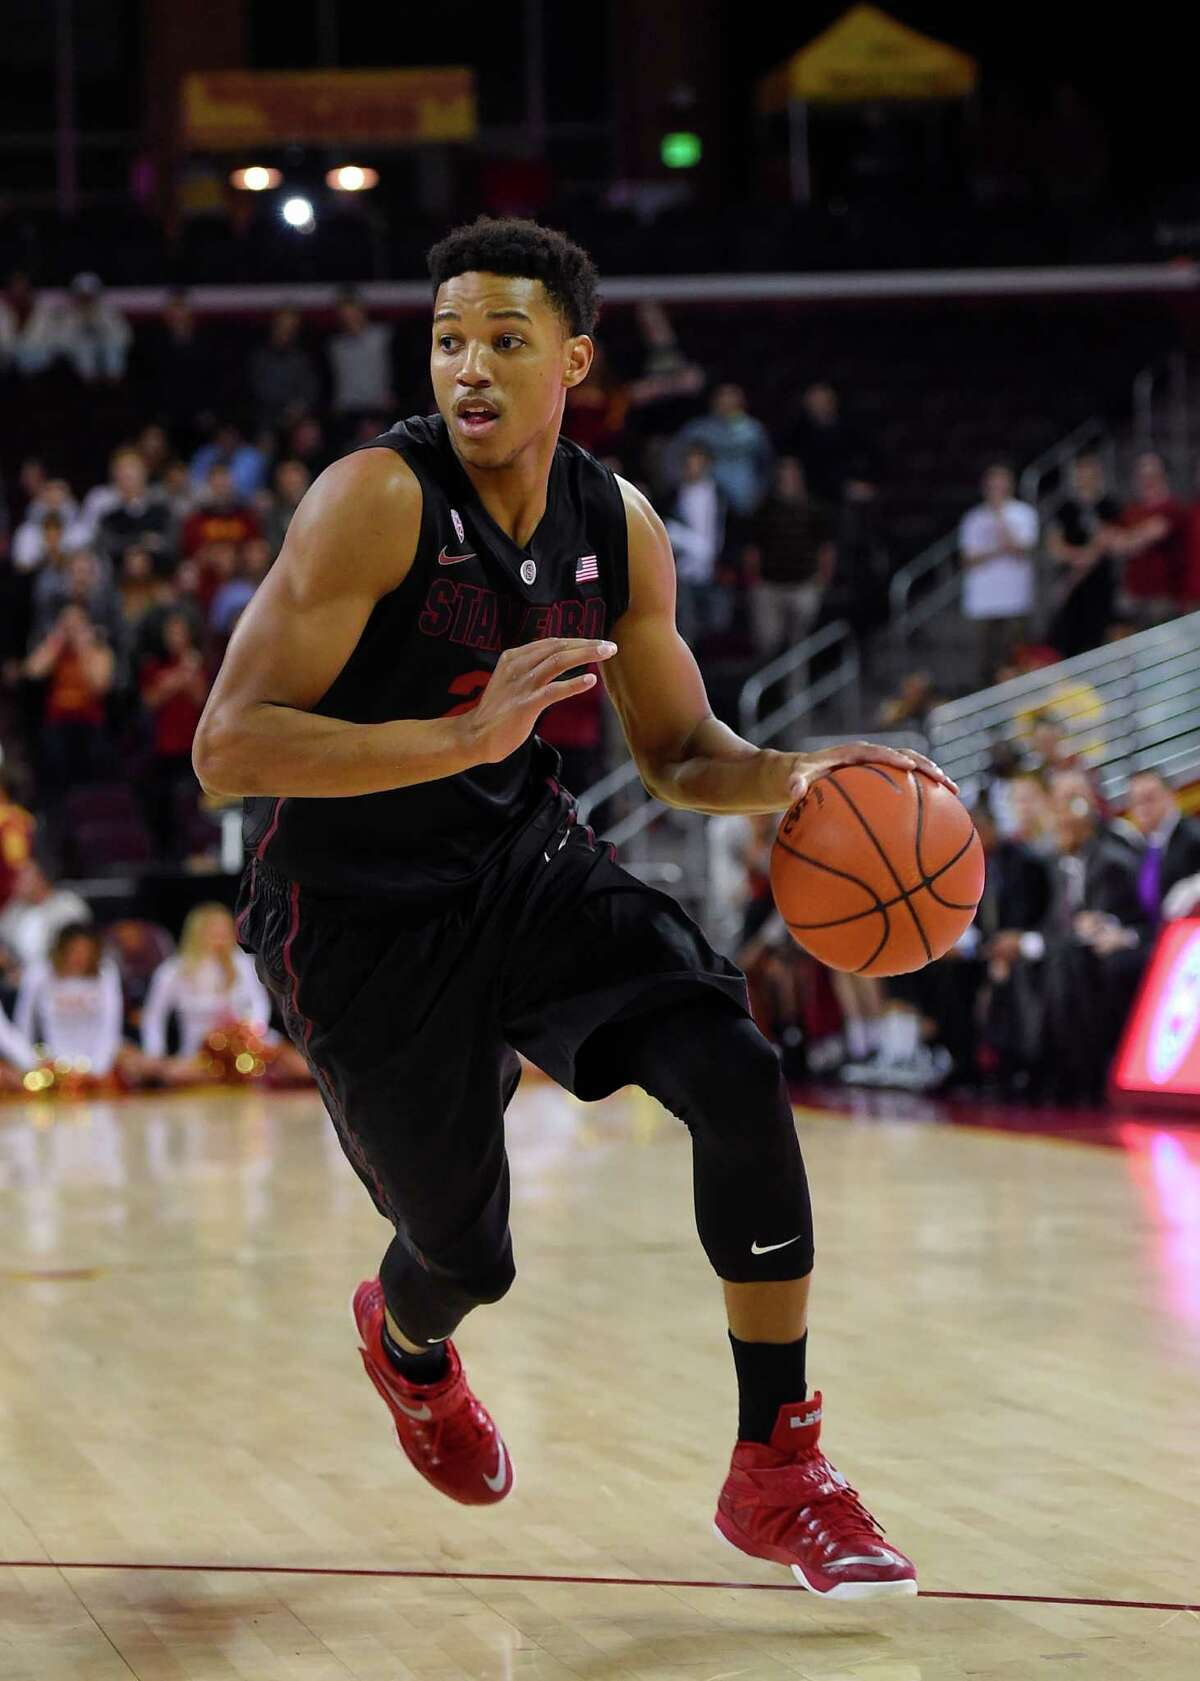 Stanford swingman Anthony Brown brings the ball up the court during the first half of an NCAA college basketball game against Southern California, Sunday, Jan. 11, 2015, in Los Angeles. (AP Photo/Gus Ruelas)